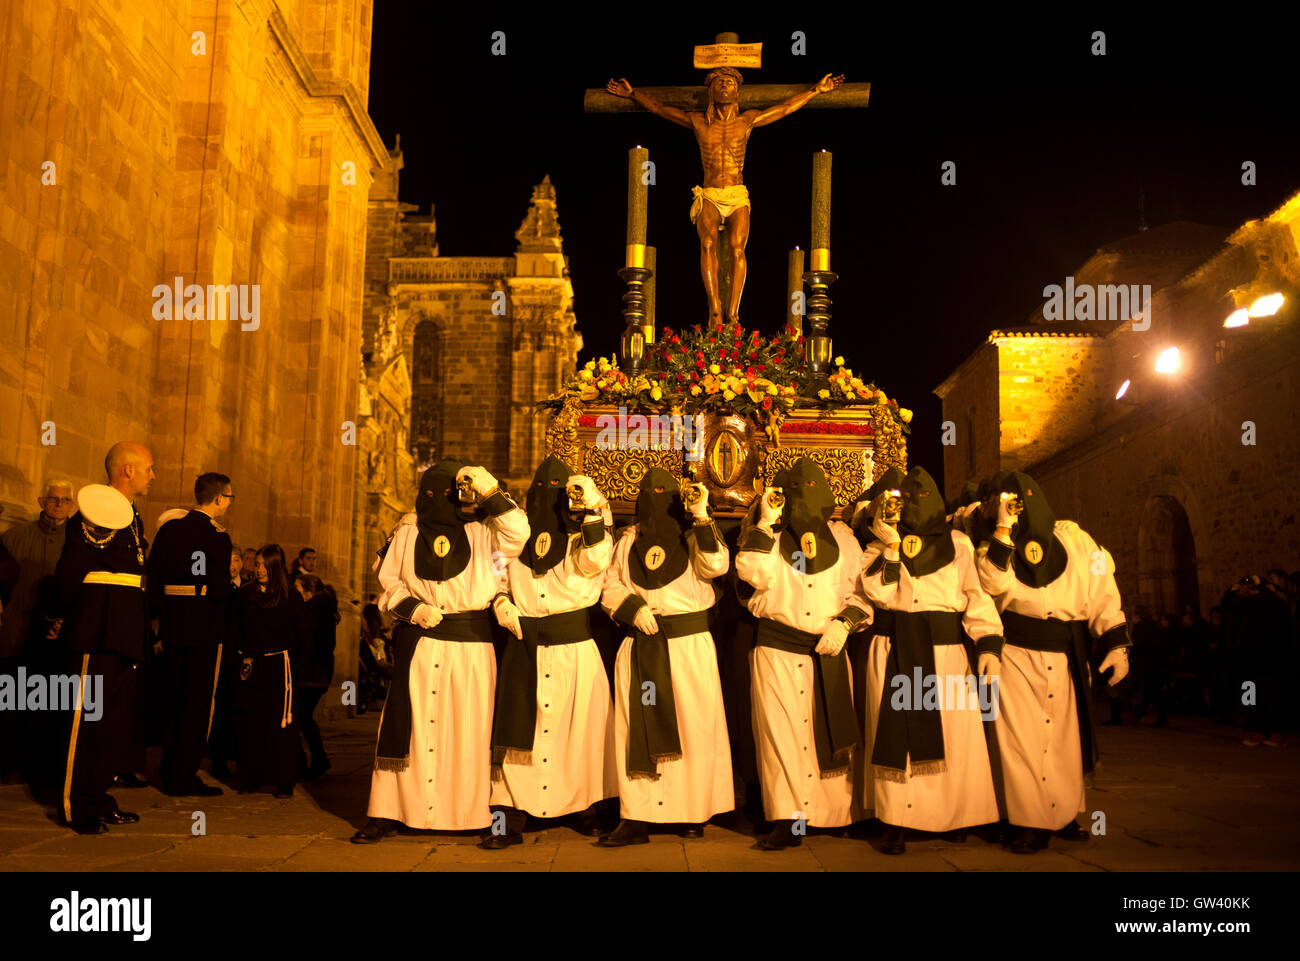 penitents carry an image of jesus christ crucified during an